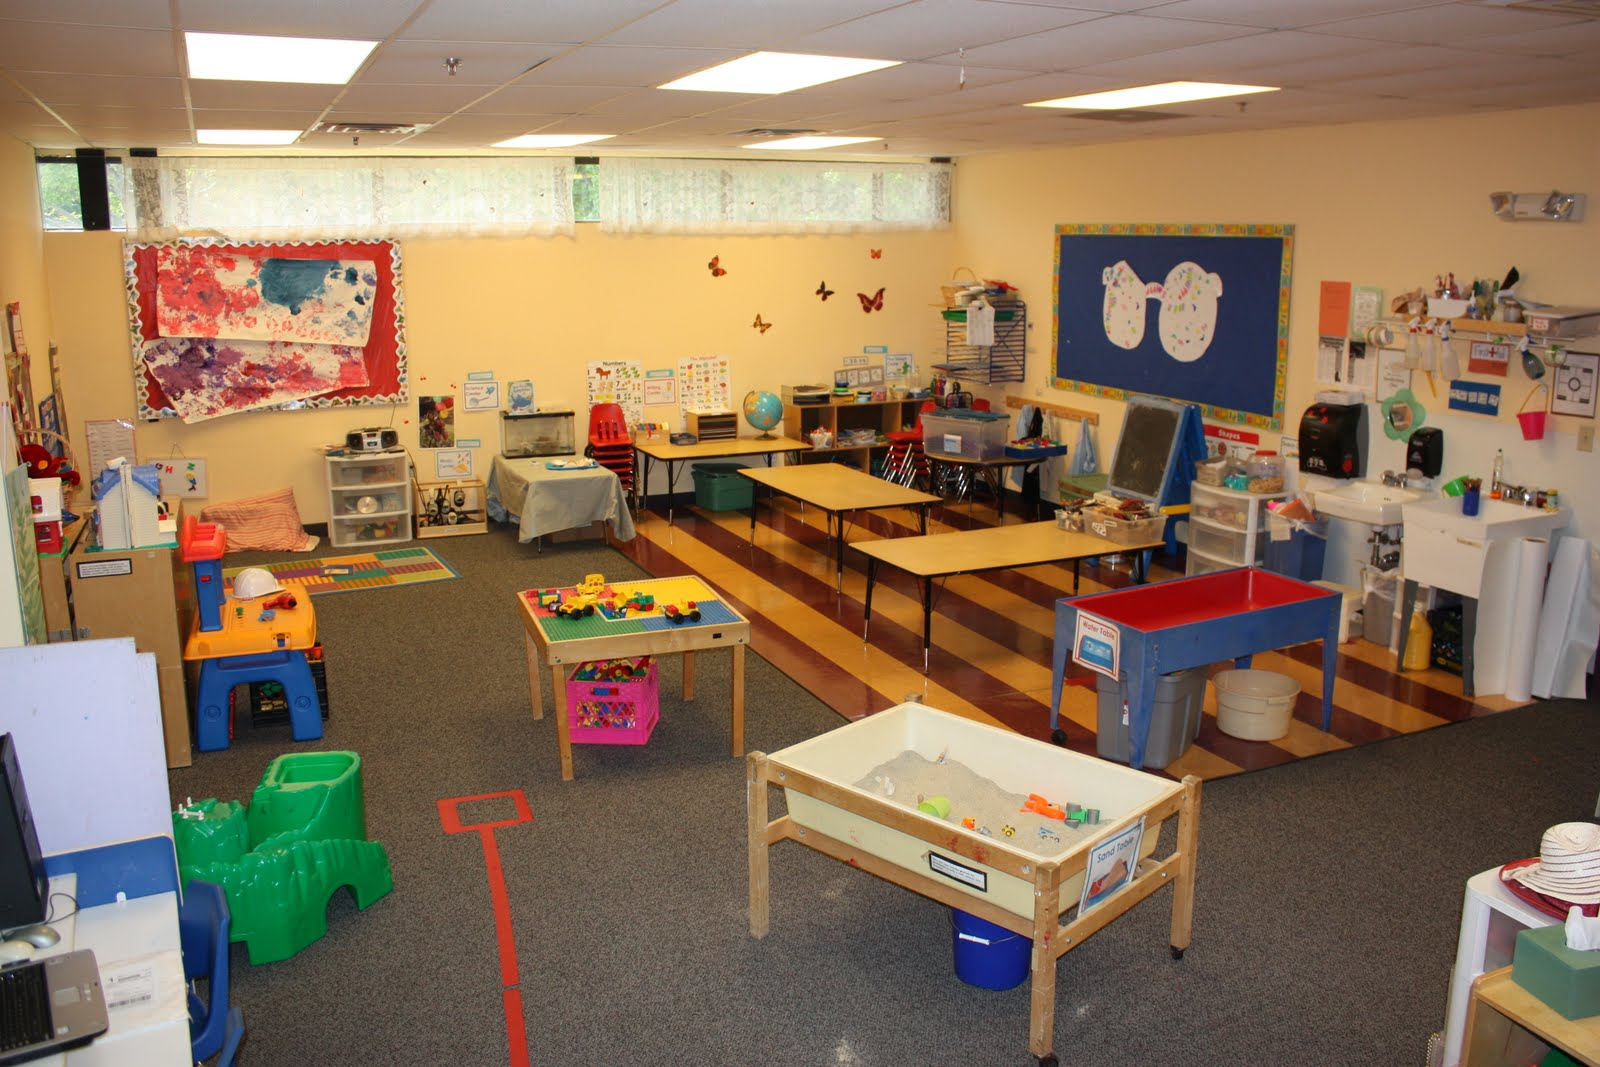 Naeyc Classroom Design ~ Room arrangement for preschool classroom best decorticosis